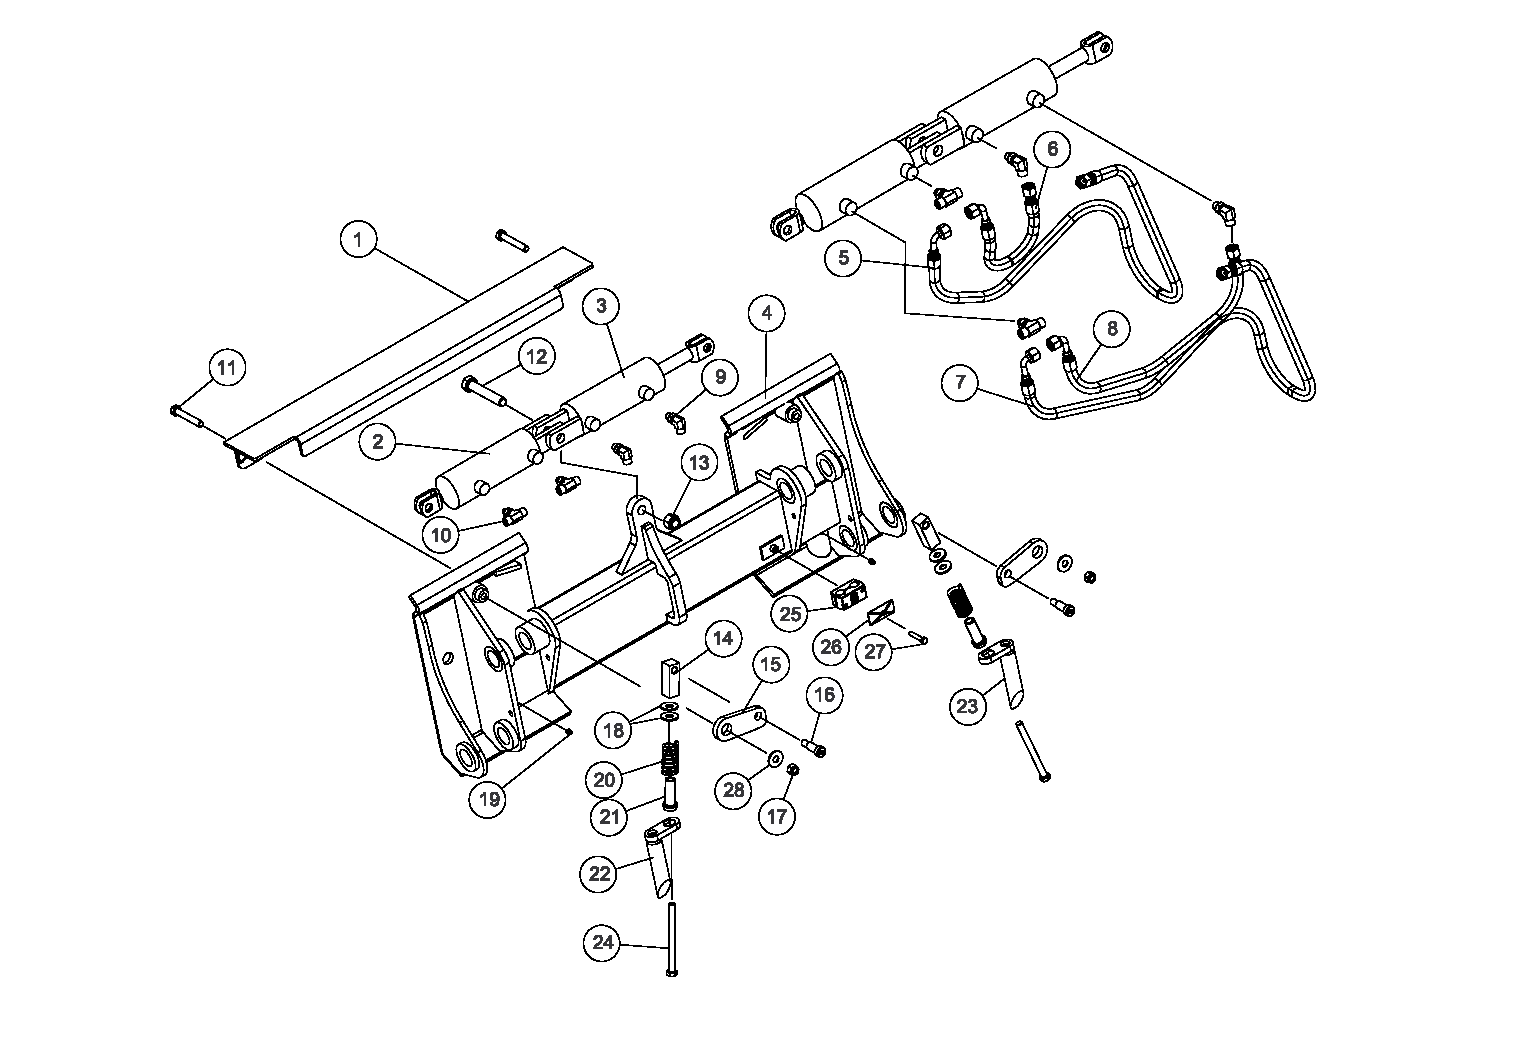 Diagram 8-2A Quick Attach Mounting Plate - Hydraulic